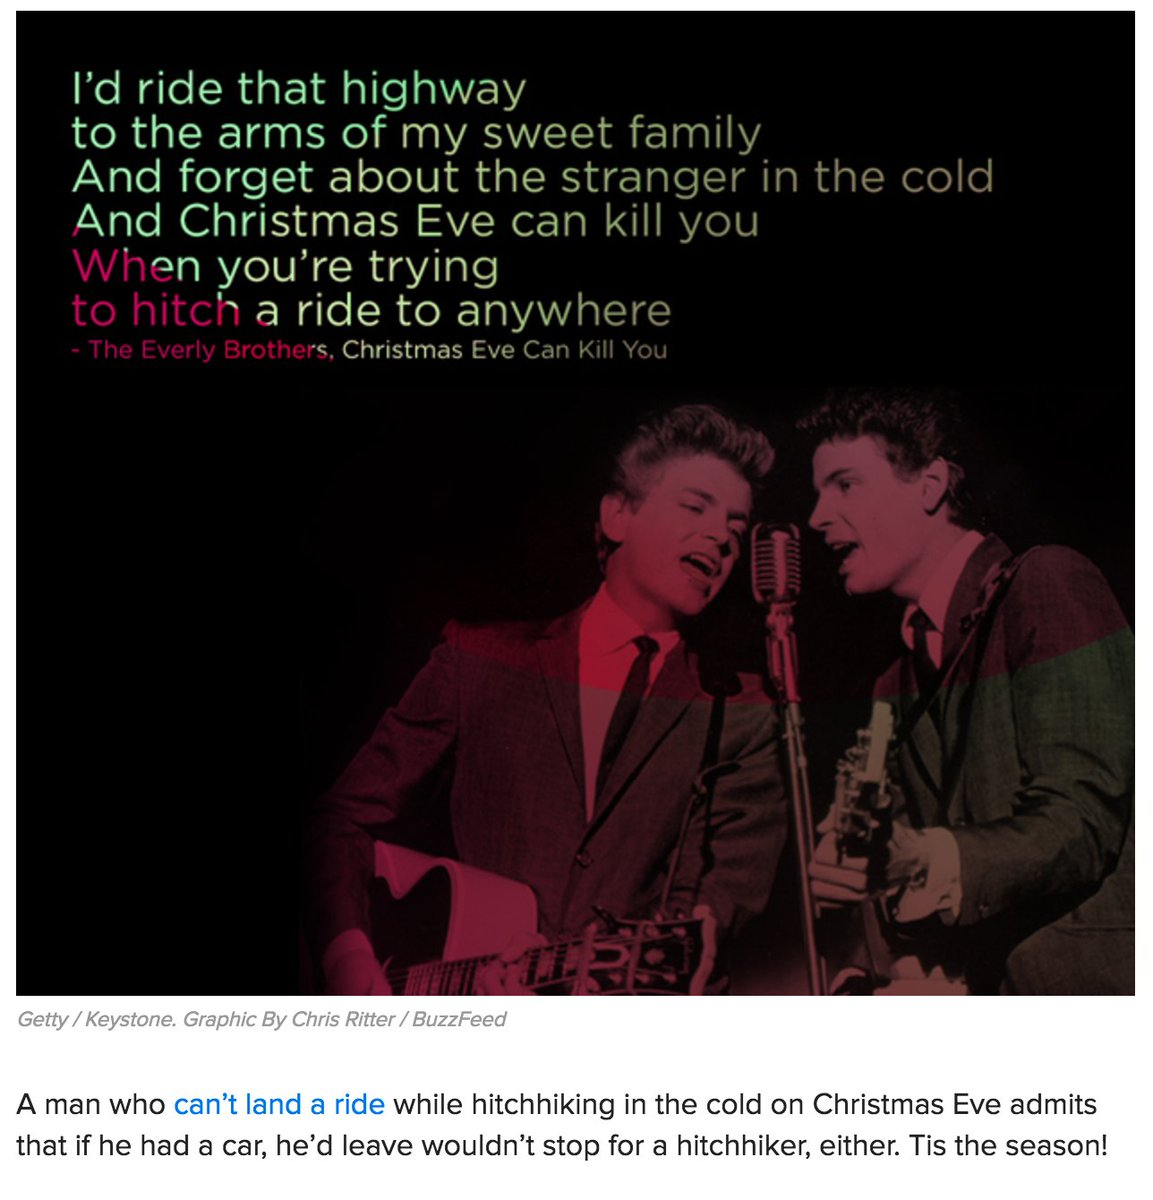 tracy the clayton on twitter i wrote a post about sad xmas songs once there are so so many depressing ones httpstcomlwrhxbkuv - Saddest Christmas Songs